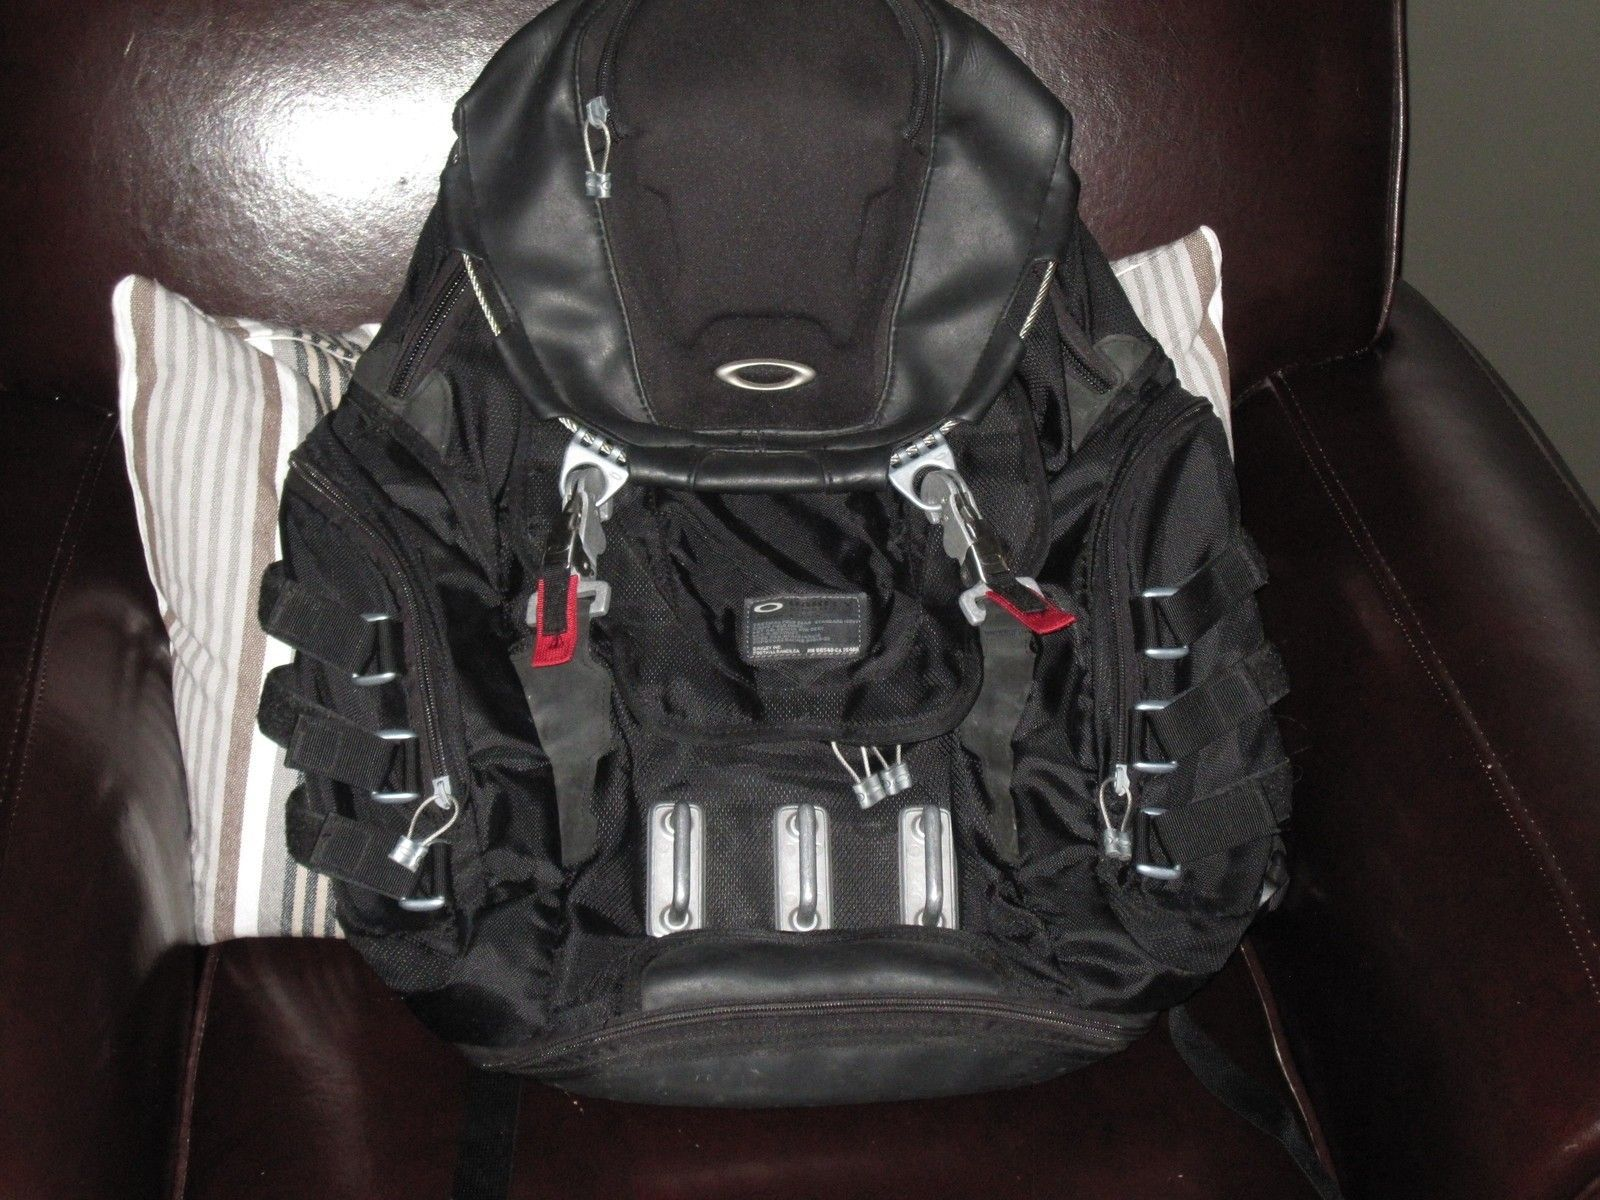 Kitchen Sink Backpack - IMG_0018.JPG